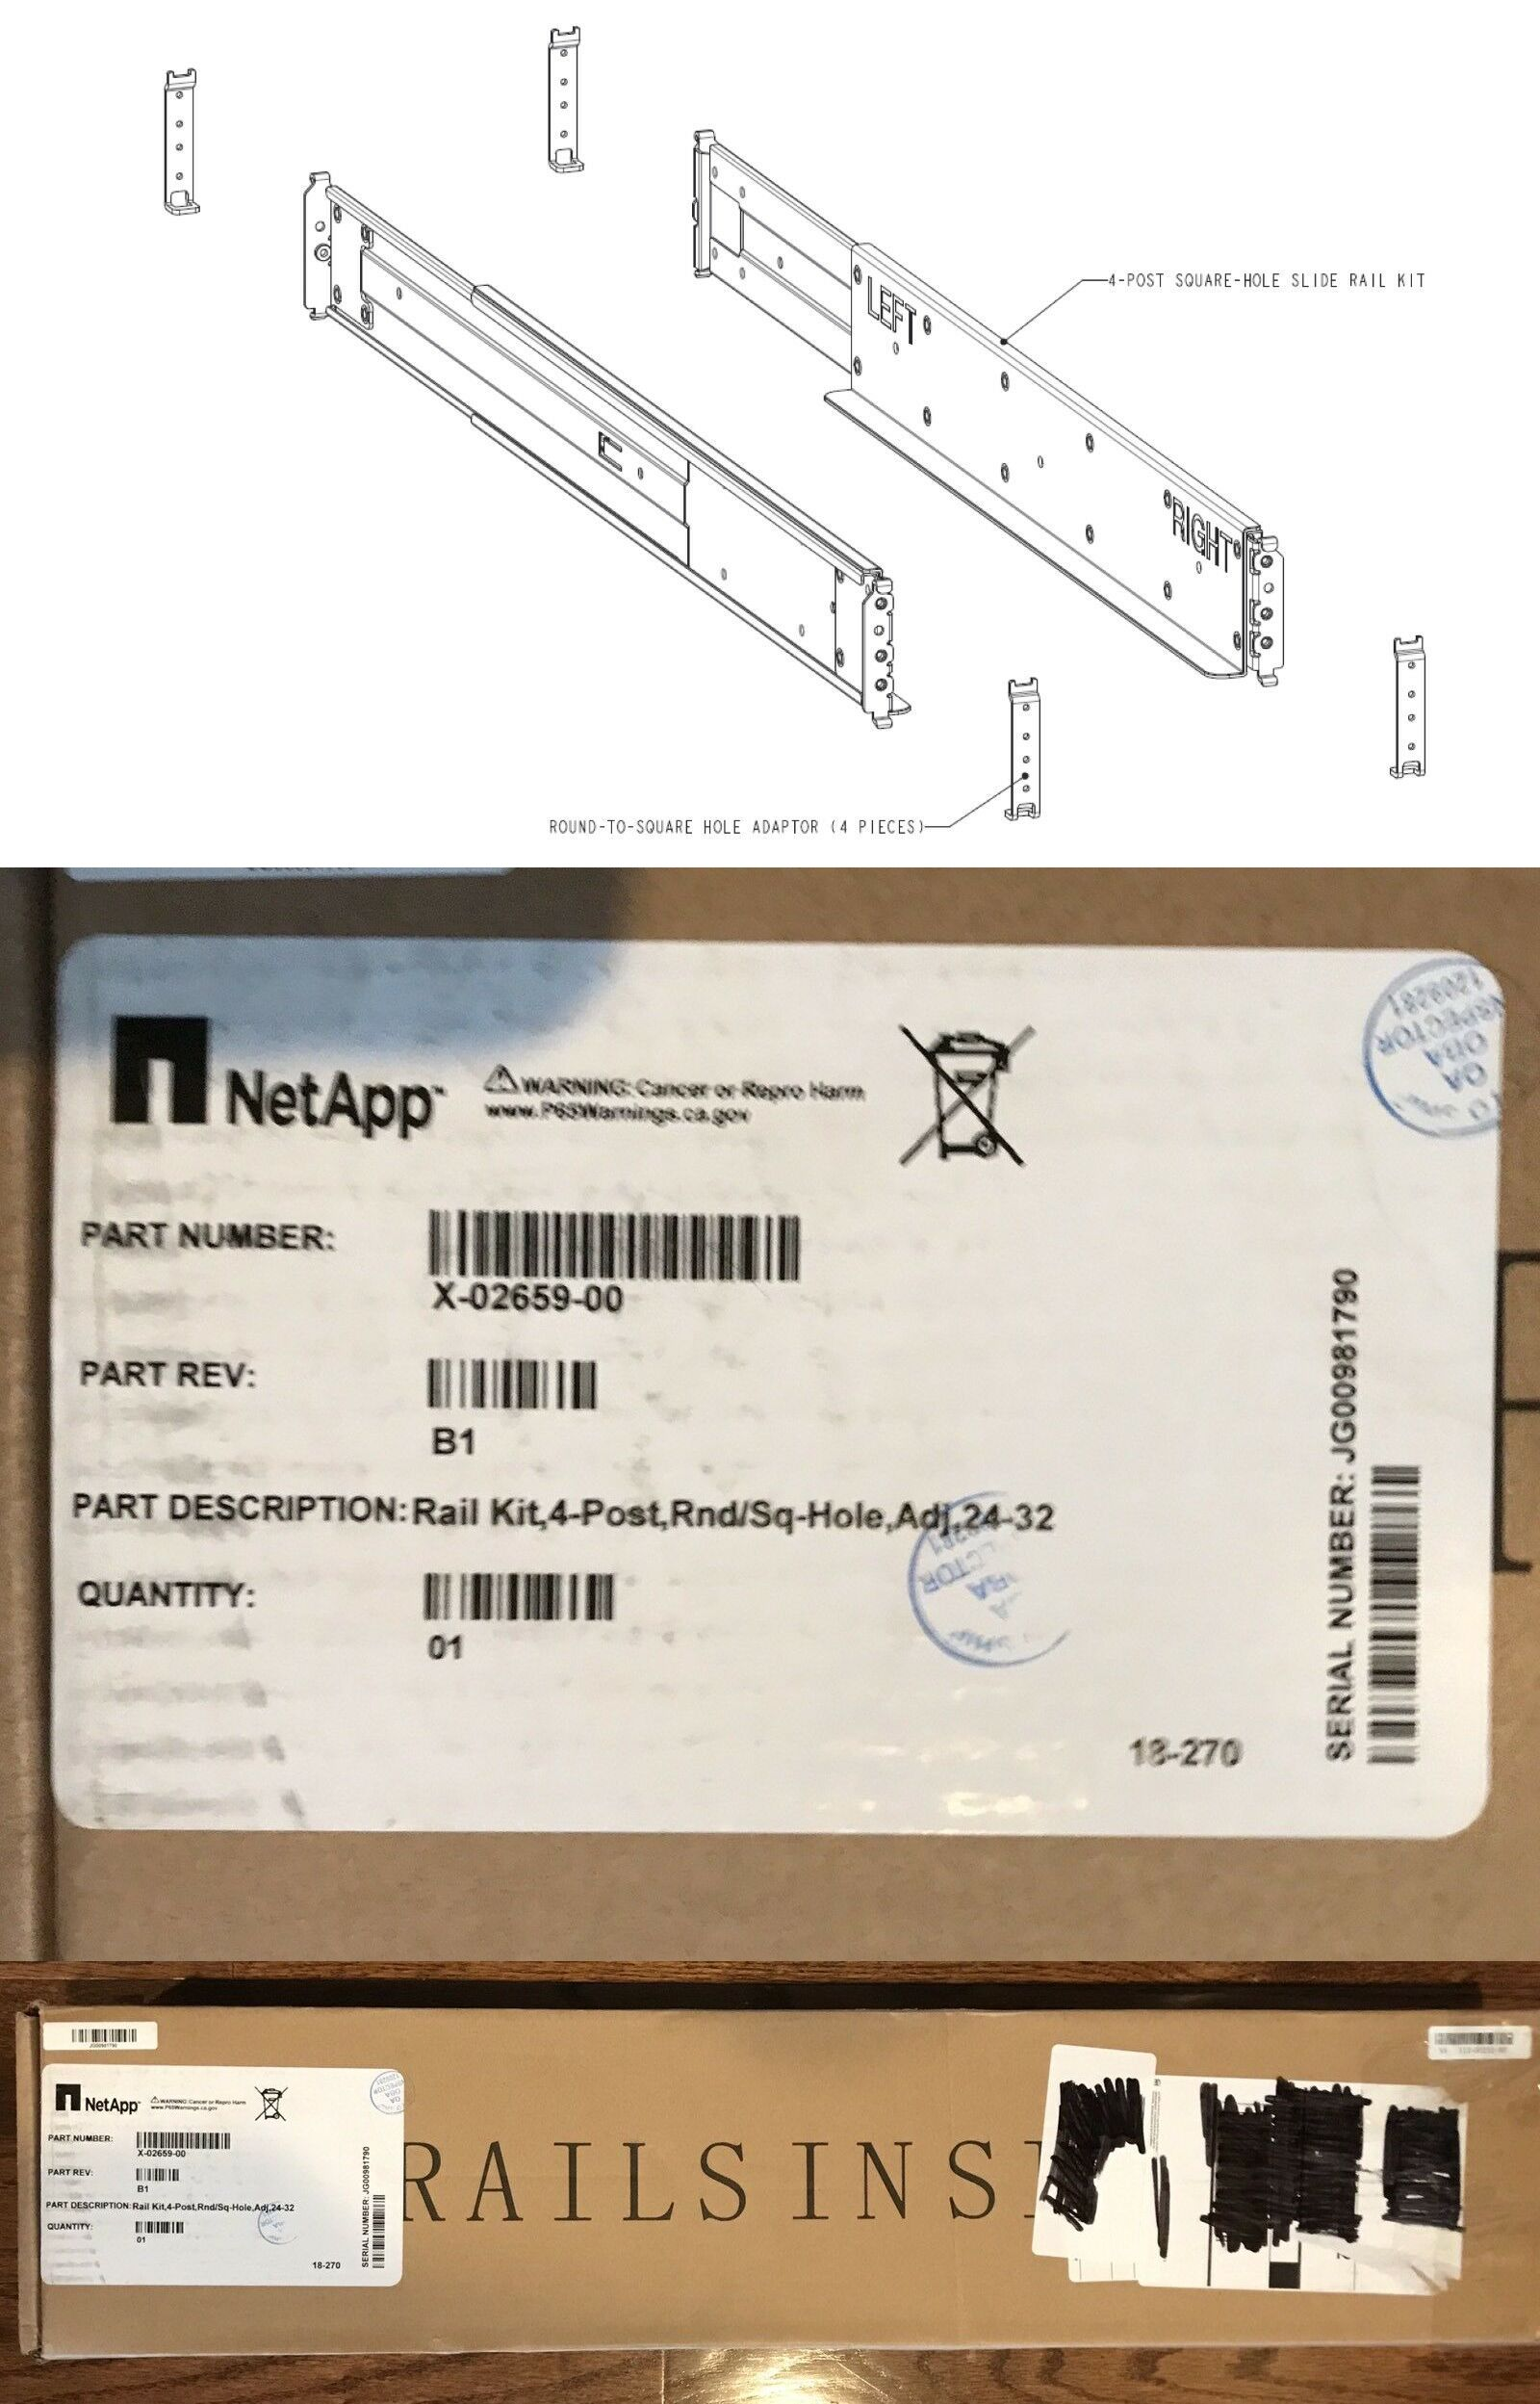 medium resolution of disk array components 58322 netapp x 02659 00 rail kit 4 post square or round hole 24 32 rail buy it now only 35 on ebay array components netapp